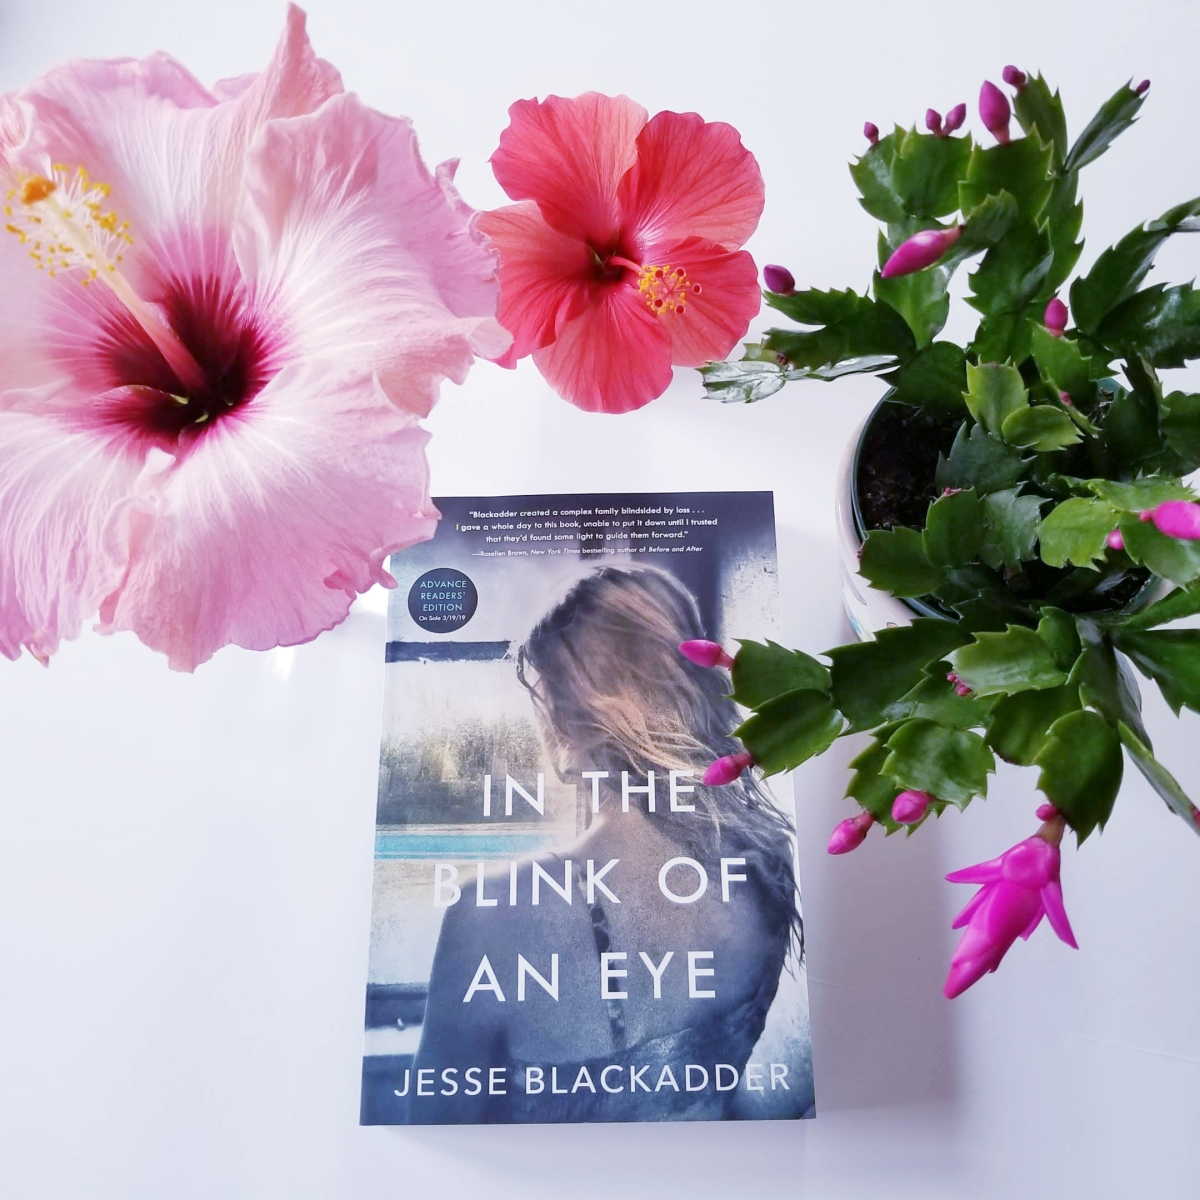 In the Blink of an Eye by Jesse Blackadder #bookreview #tarheelreader #thrblinkofaneye @jesseblackadder @stmartinspress #intheblinkofaneye